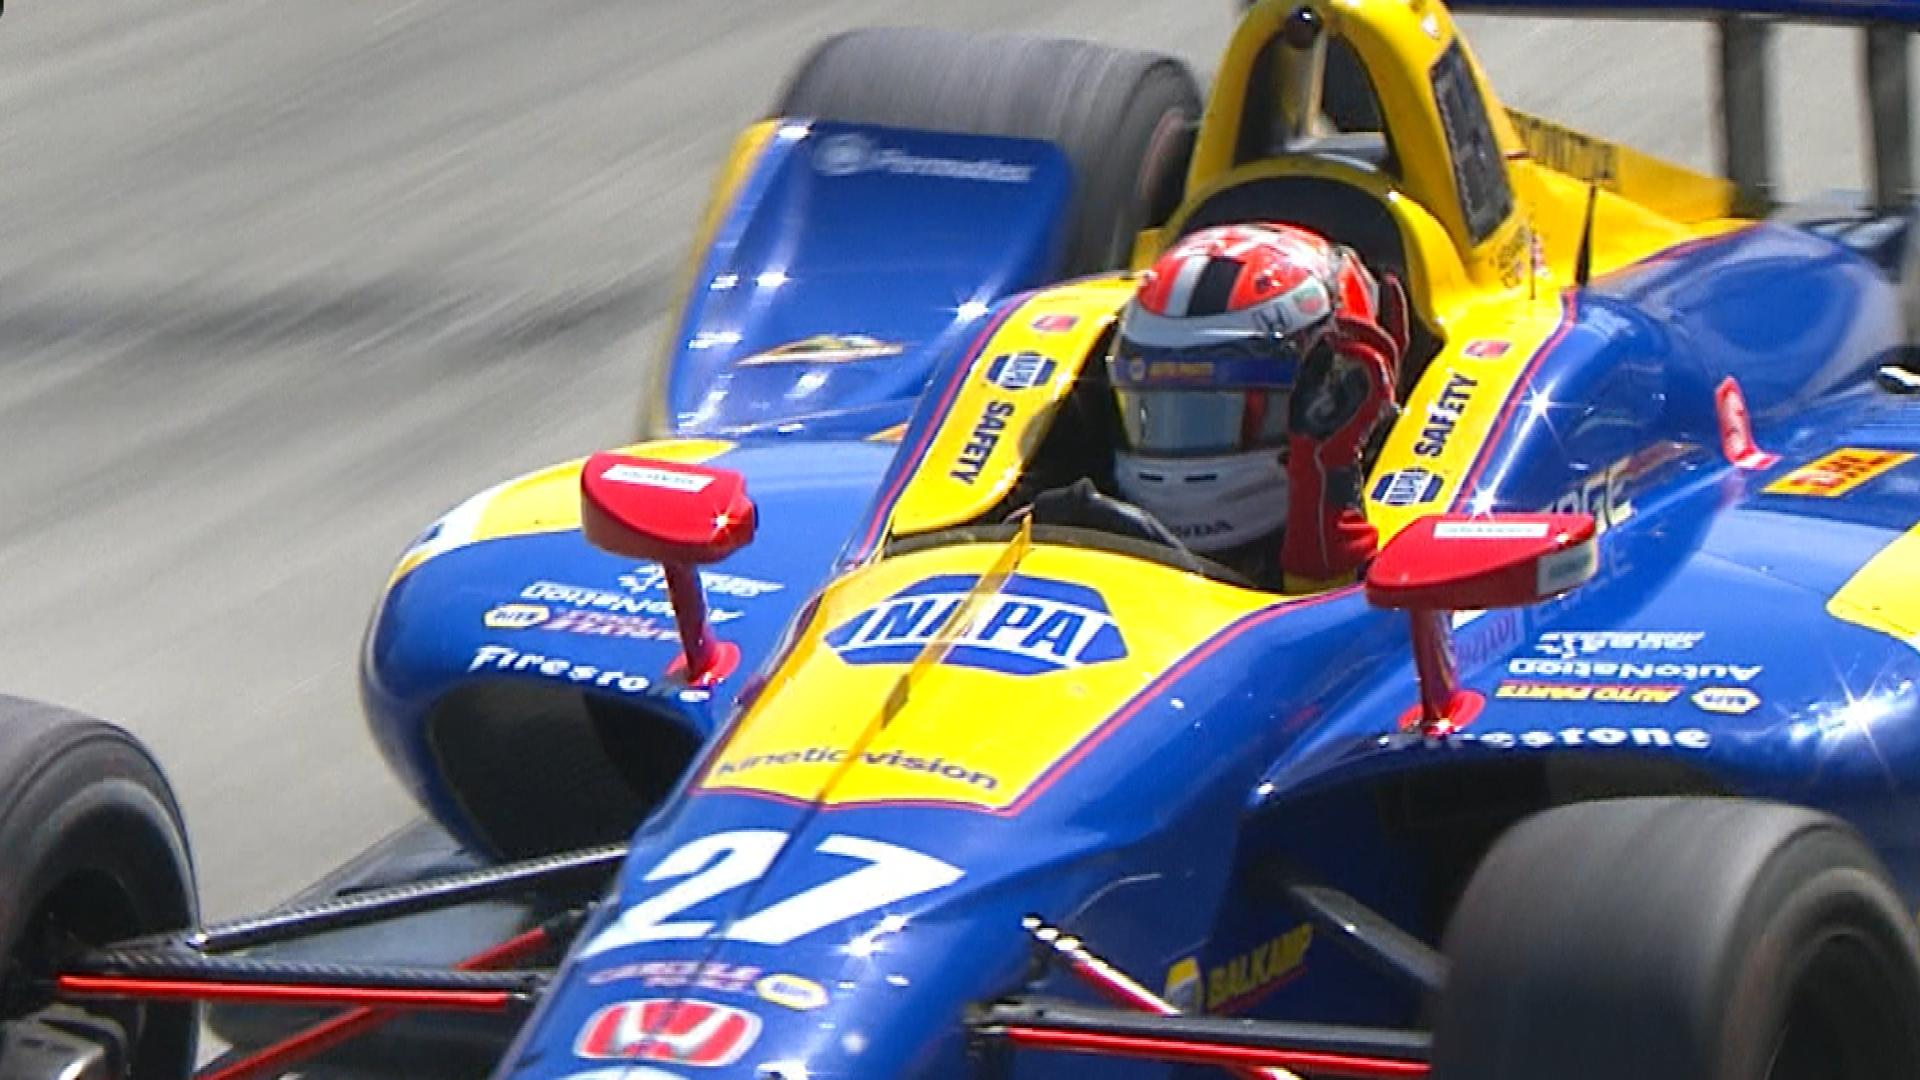 Alexander Rossi wins IndyCar Grand Prix of Long Beach